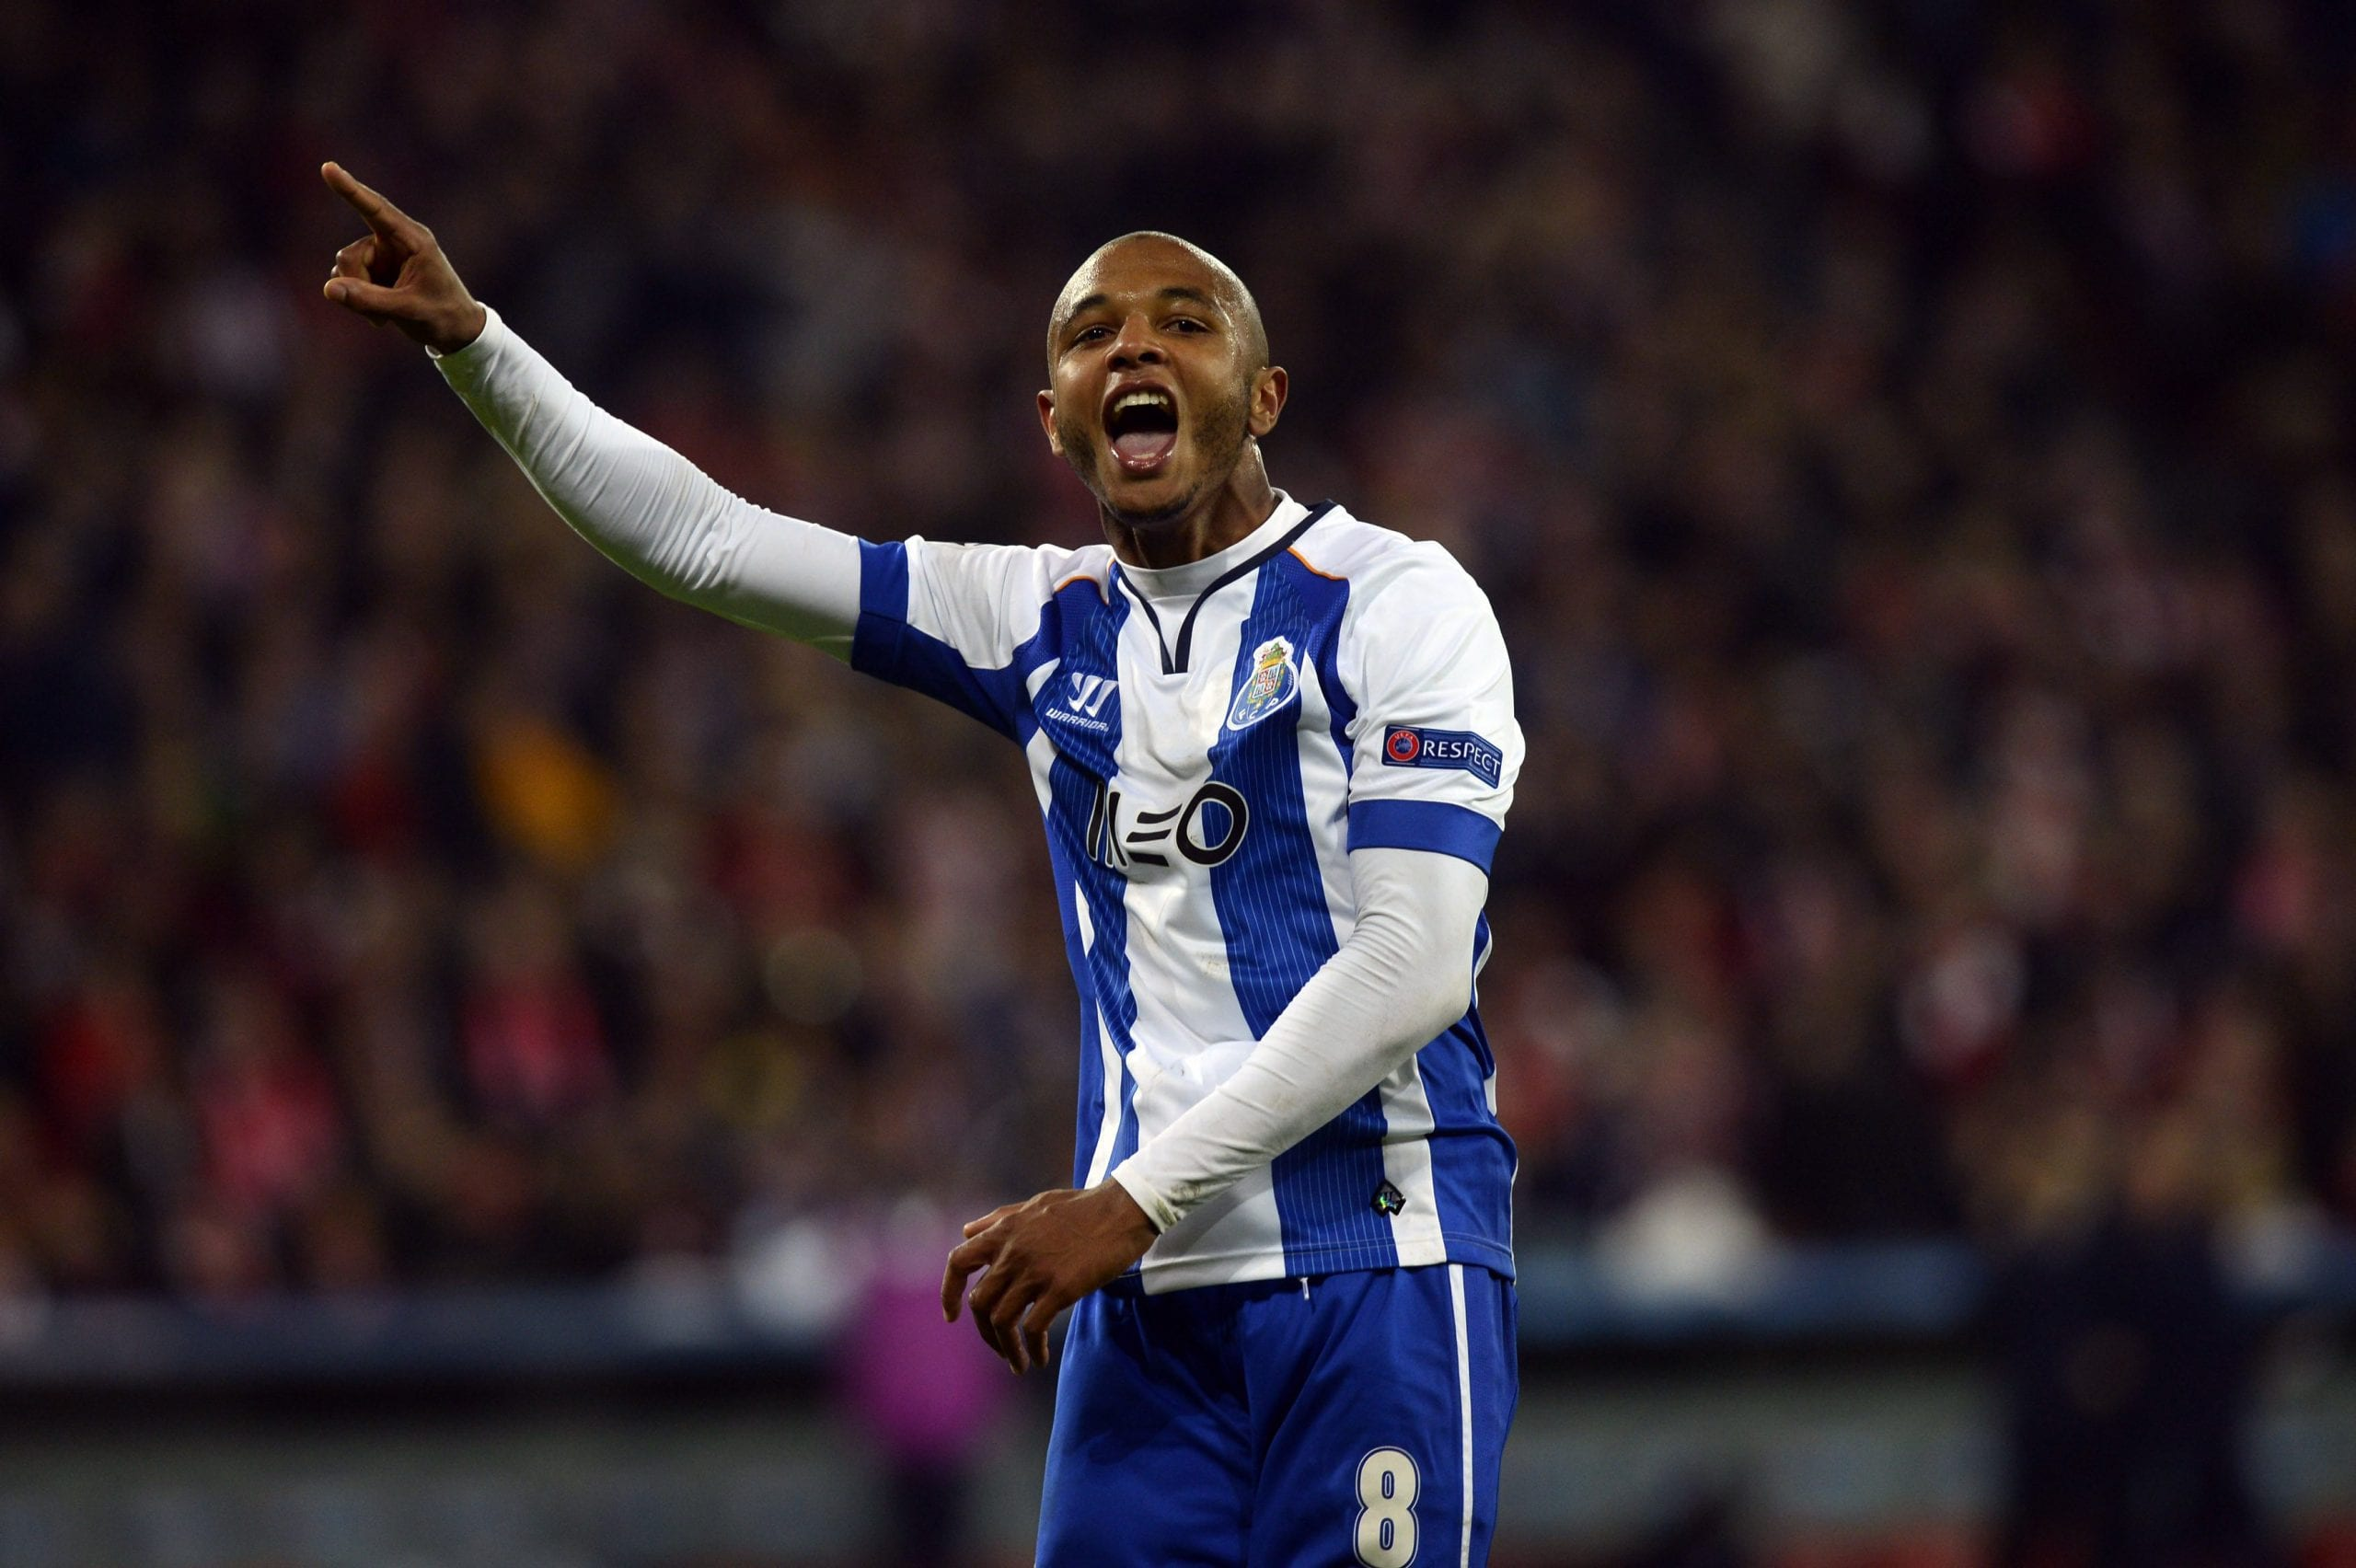 Porto's Yacine Brahimi celebrates a goal during their Champions League Group H soccer match against Athletic Bilbao at San Mames stadium in Bilbao